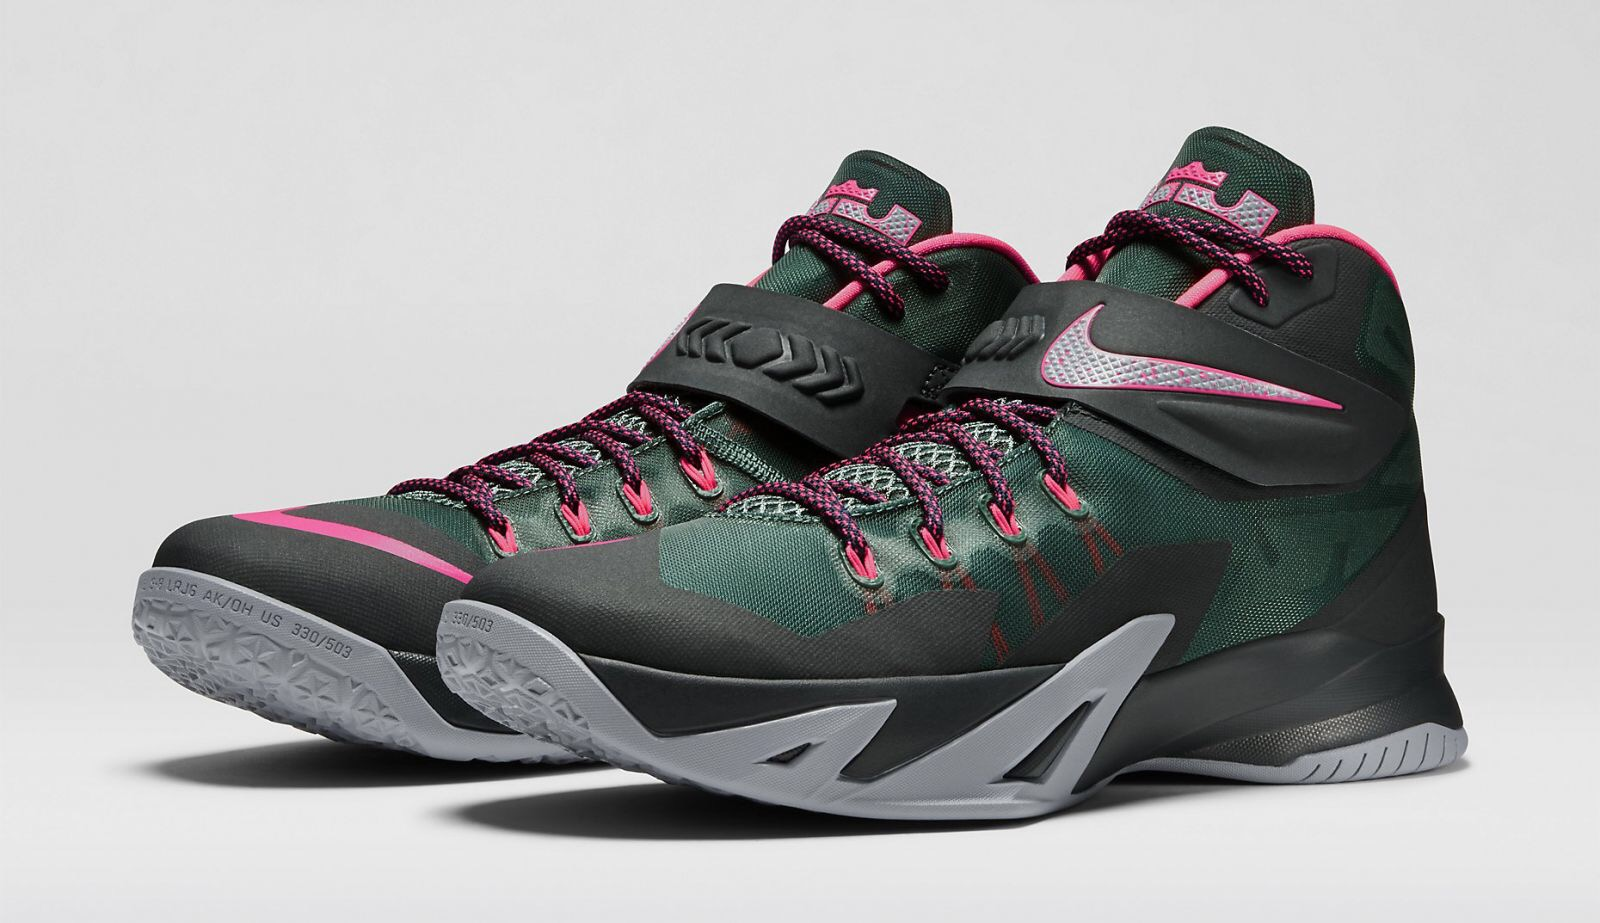 info for f28ed d0e0a Nike Zoom LeBron Soldier 8 'Seaweed' - Available Now